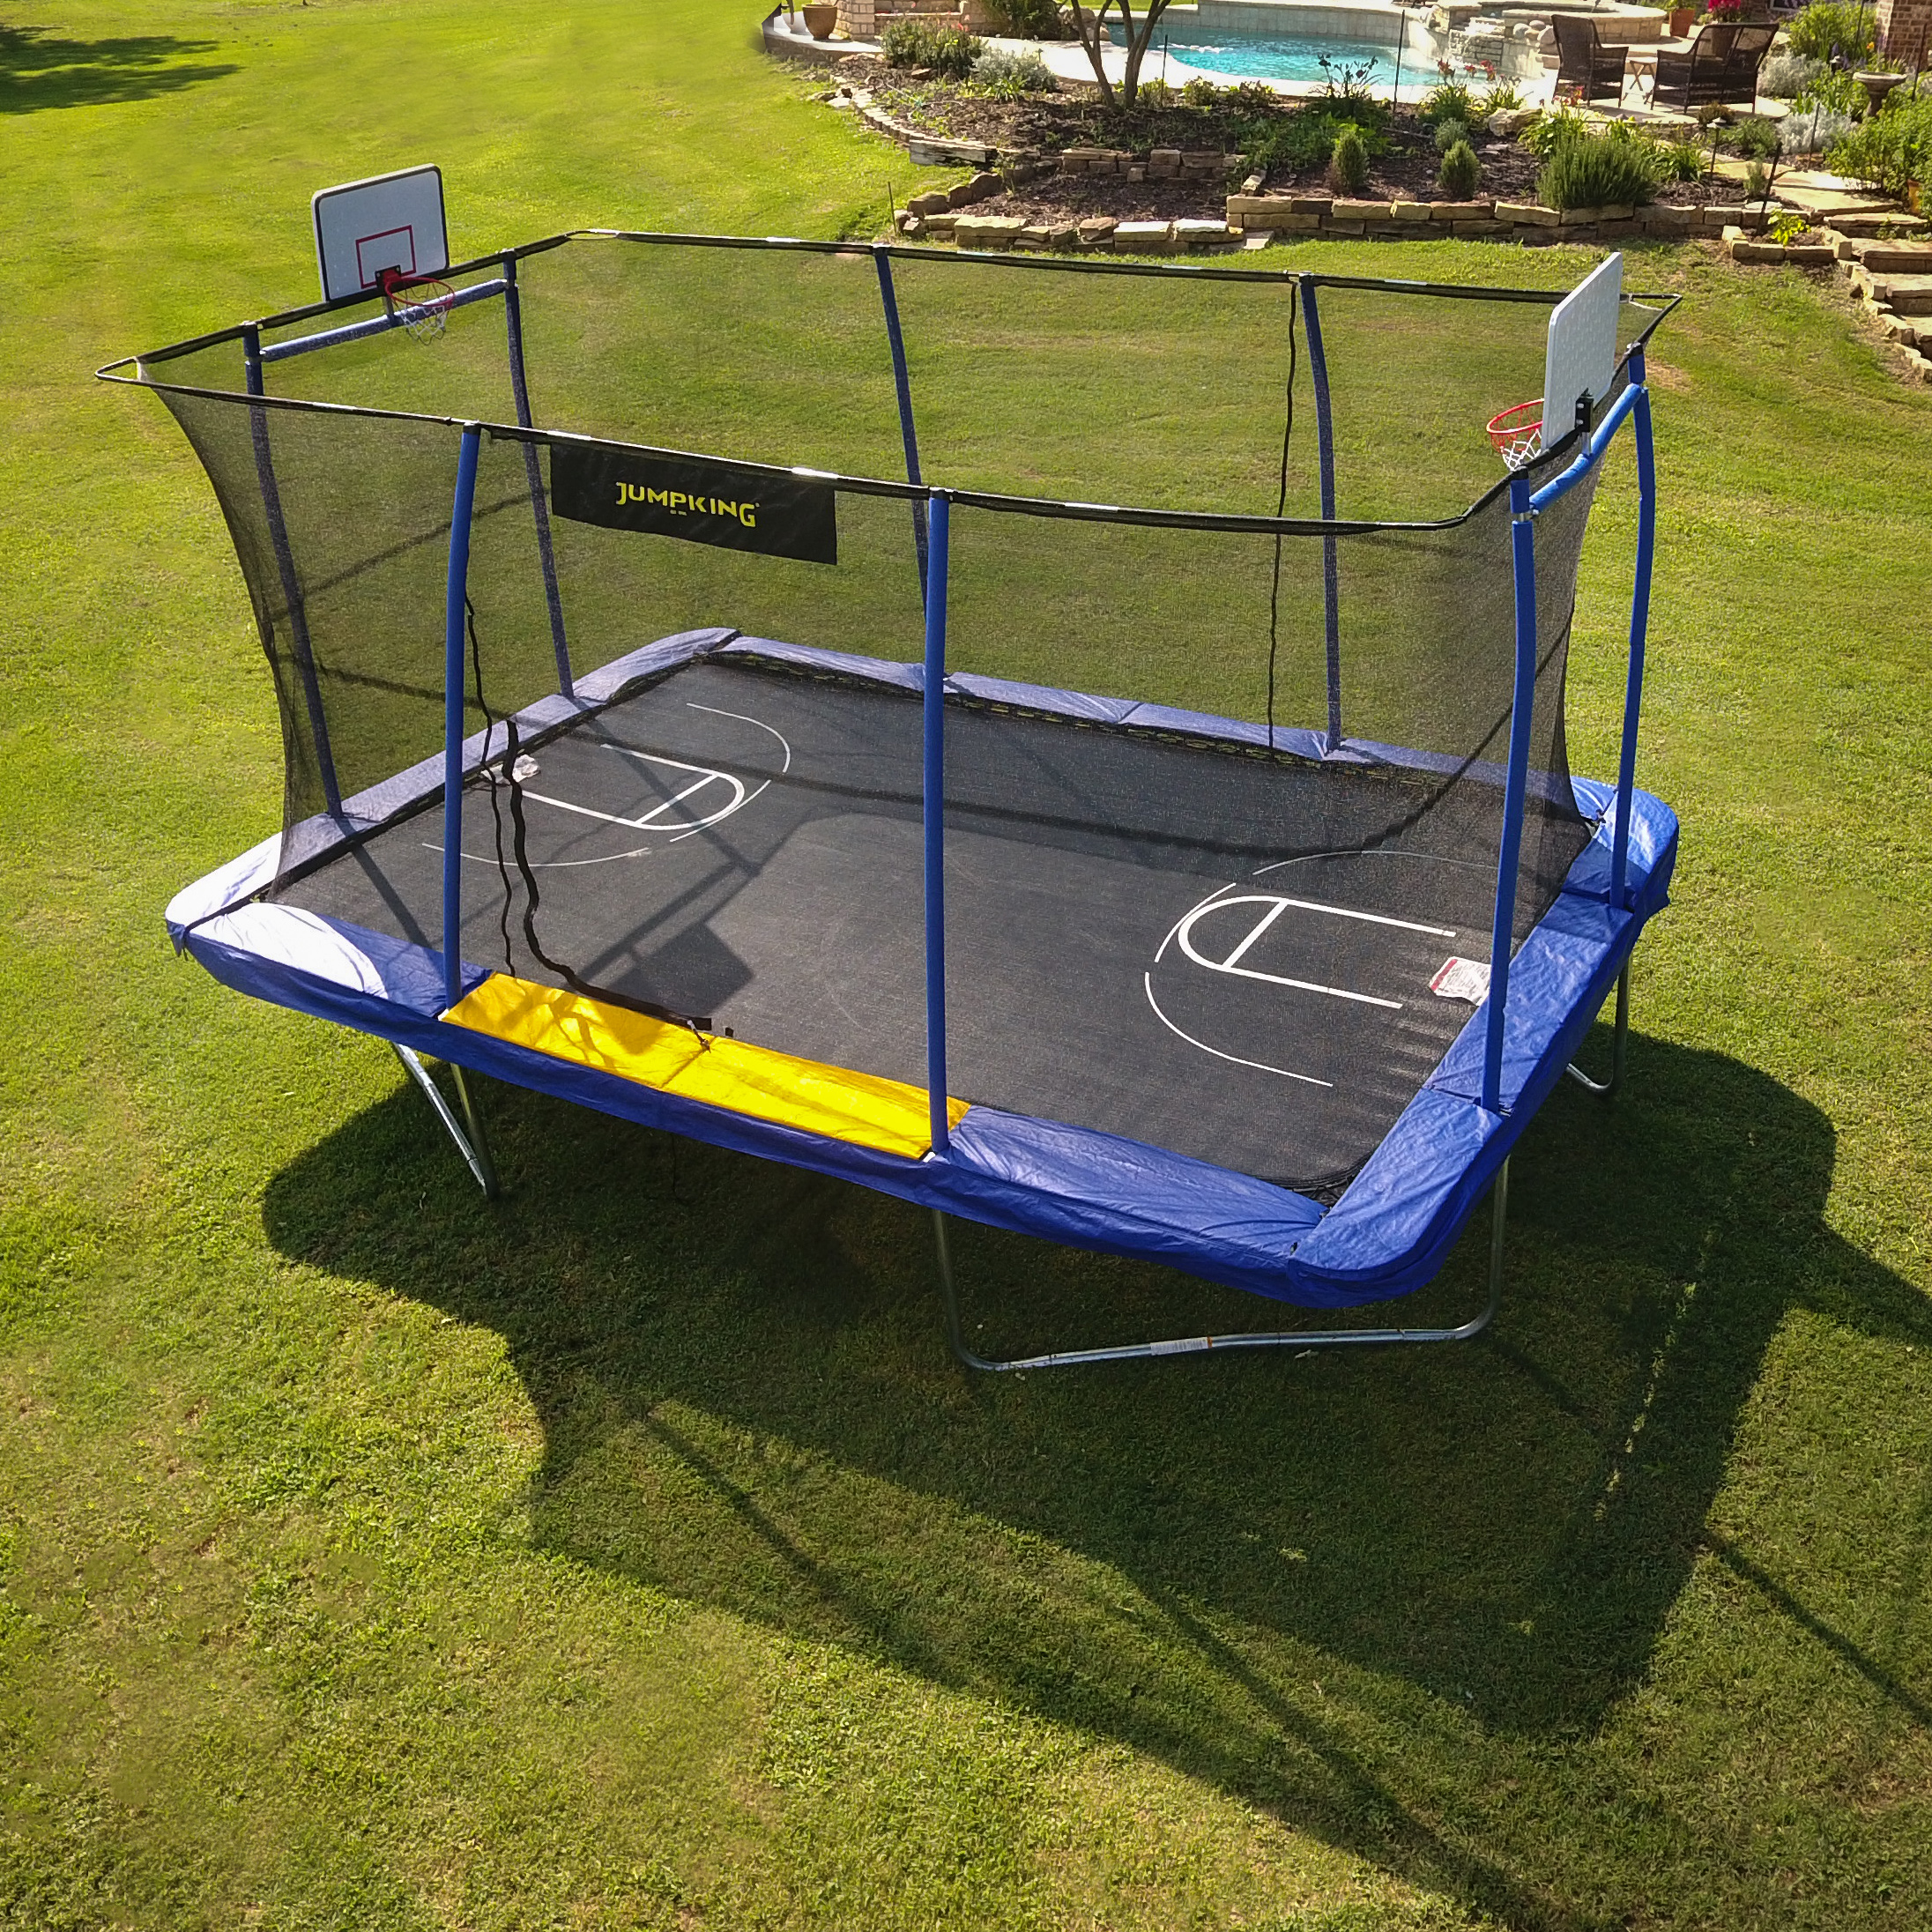 Jumpking Rectangle 10 X 15 Trampoline With 2 Basketball Hoops Footstep And Court Print Blue Yellow Walmart Com Walmart Com